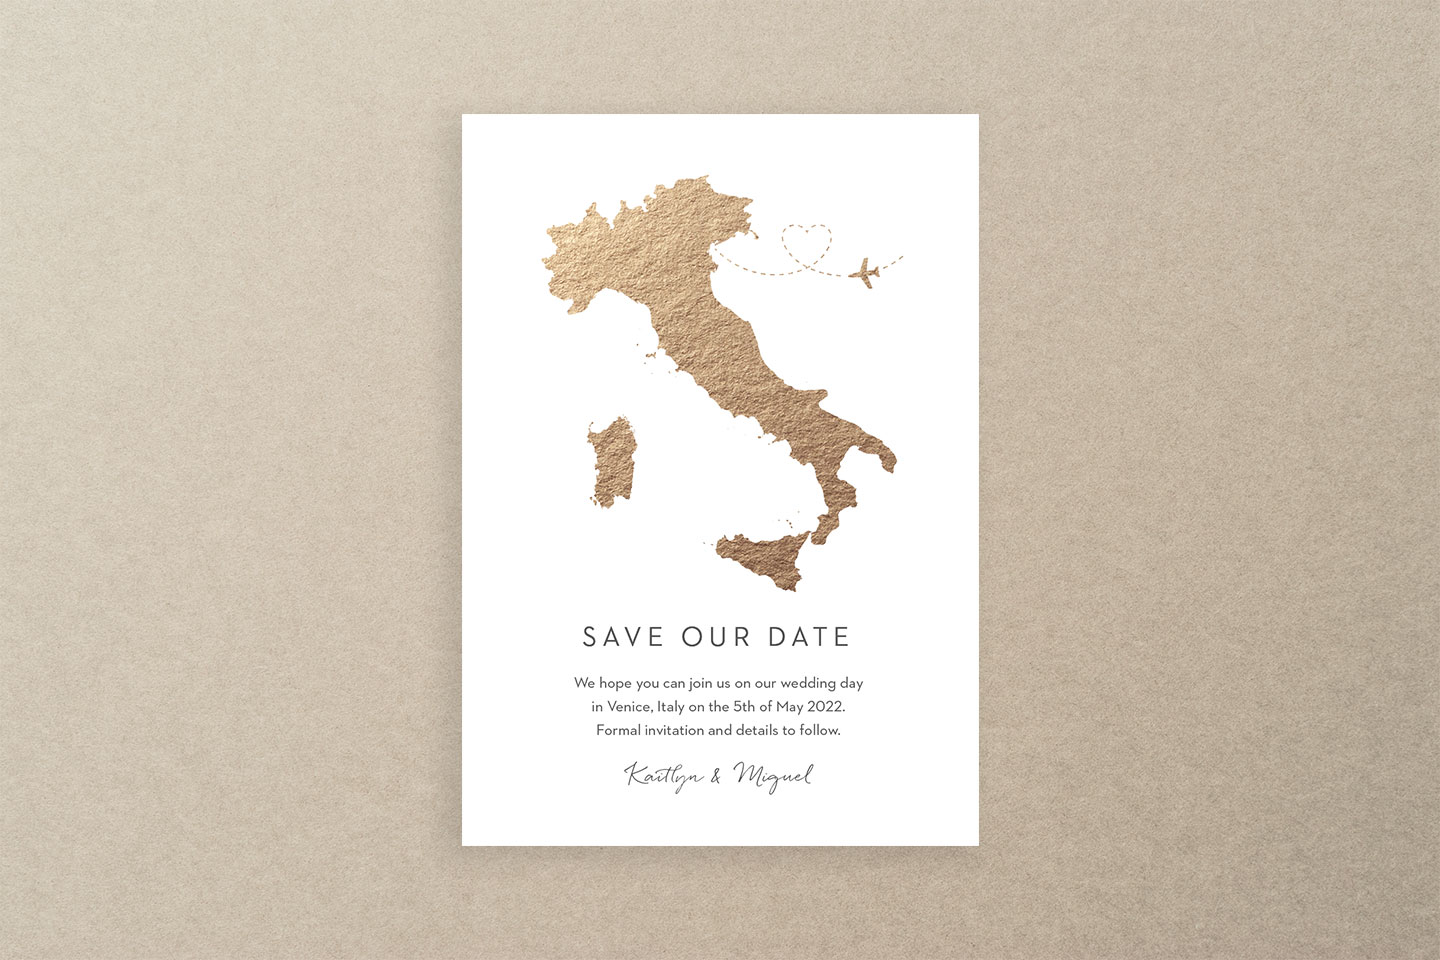 Gold Foil Map Save the Date Cards | Top Wedding Stationery Trends 2020 | Foil Invite Company Blog